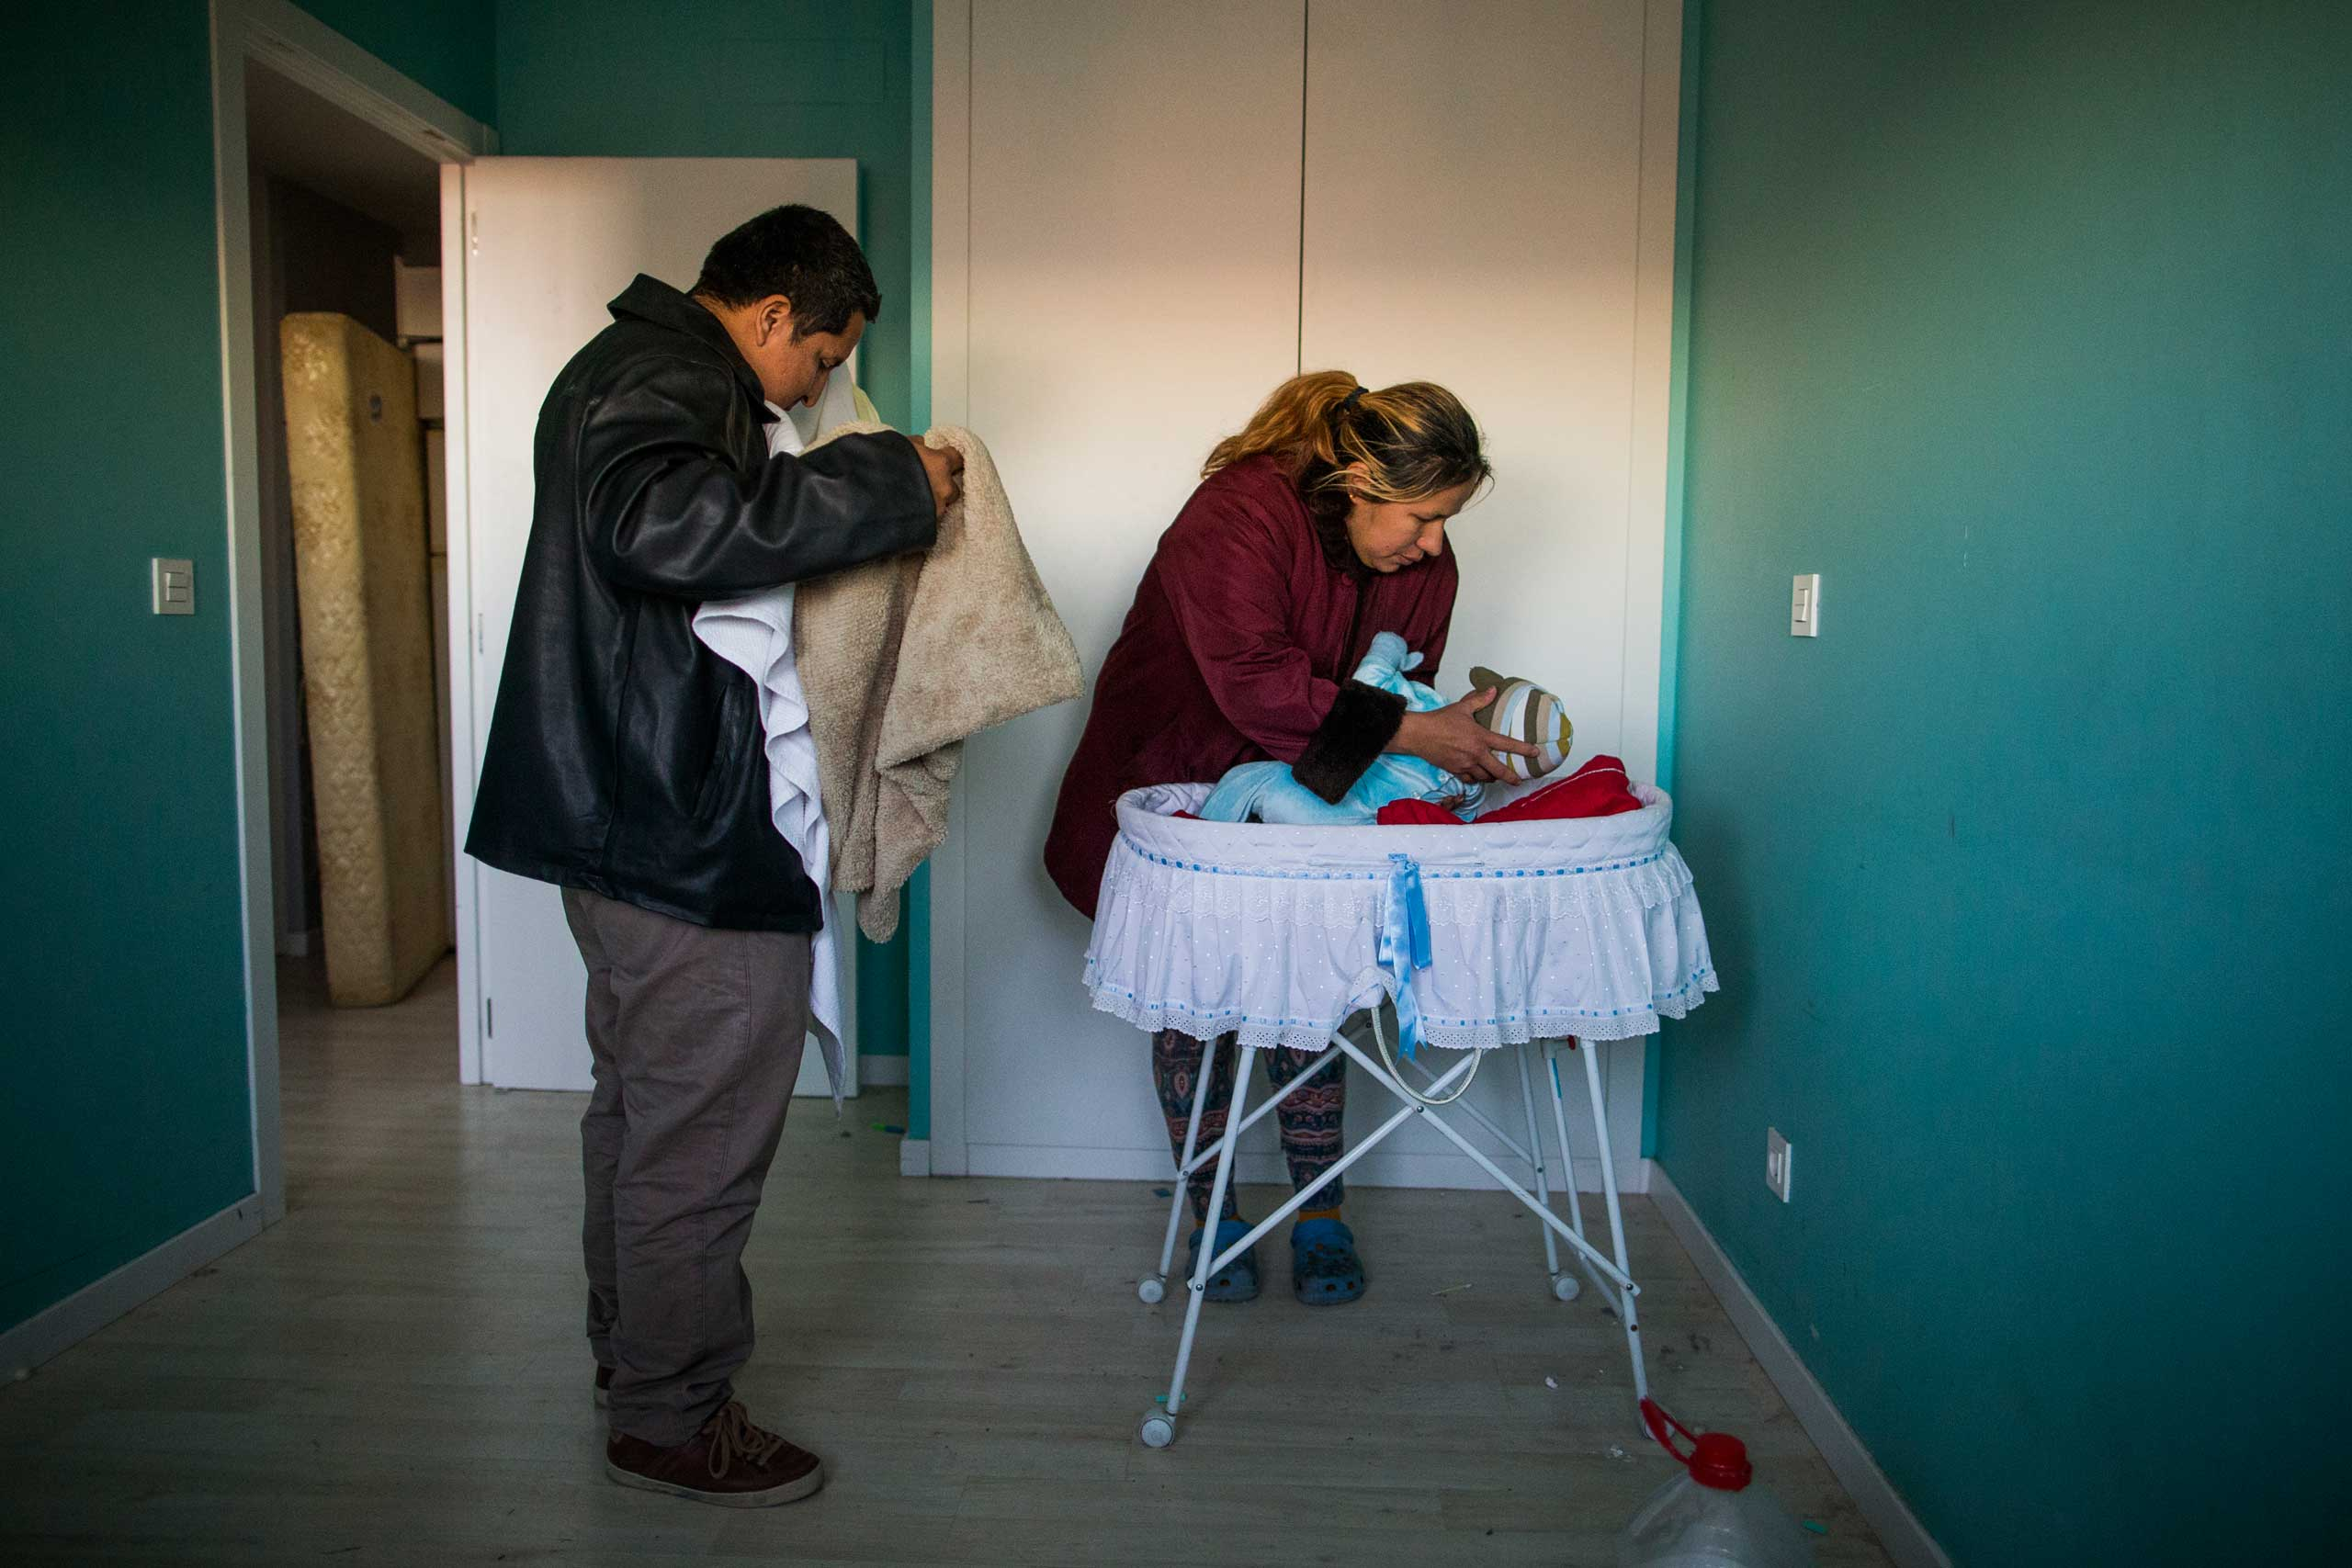 Furniture is packed behind the main door to stop riot police from entering the apartment as Cecilia Paredes and her husband Wilson Ruilova prepare to leave with their baby Dilan during their eviction in Madrid. Jan. 2015.